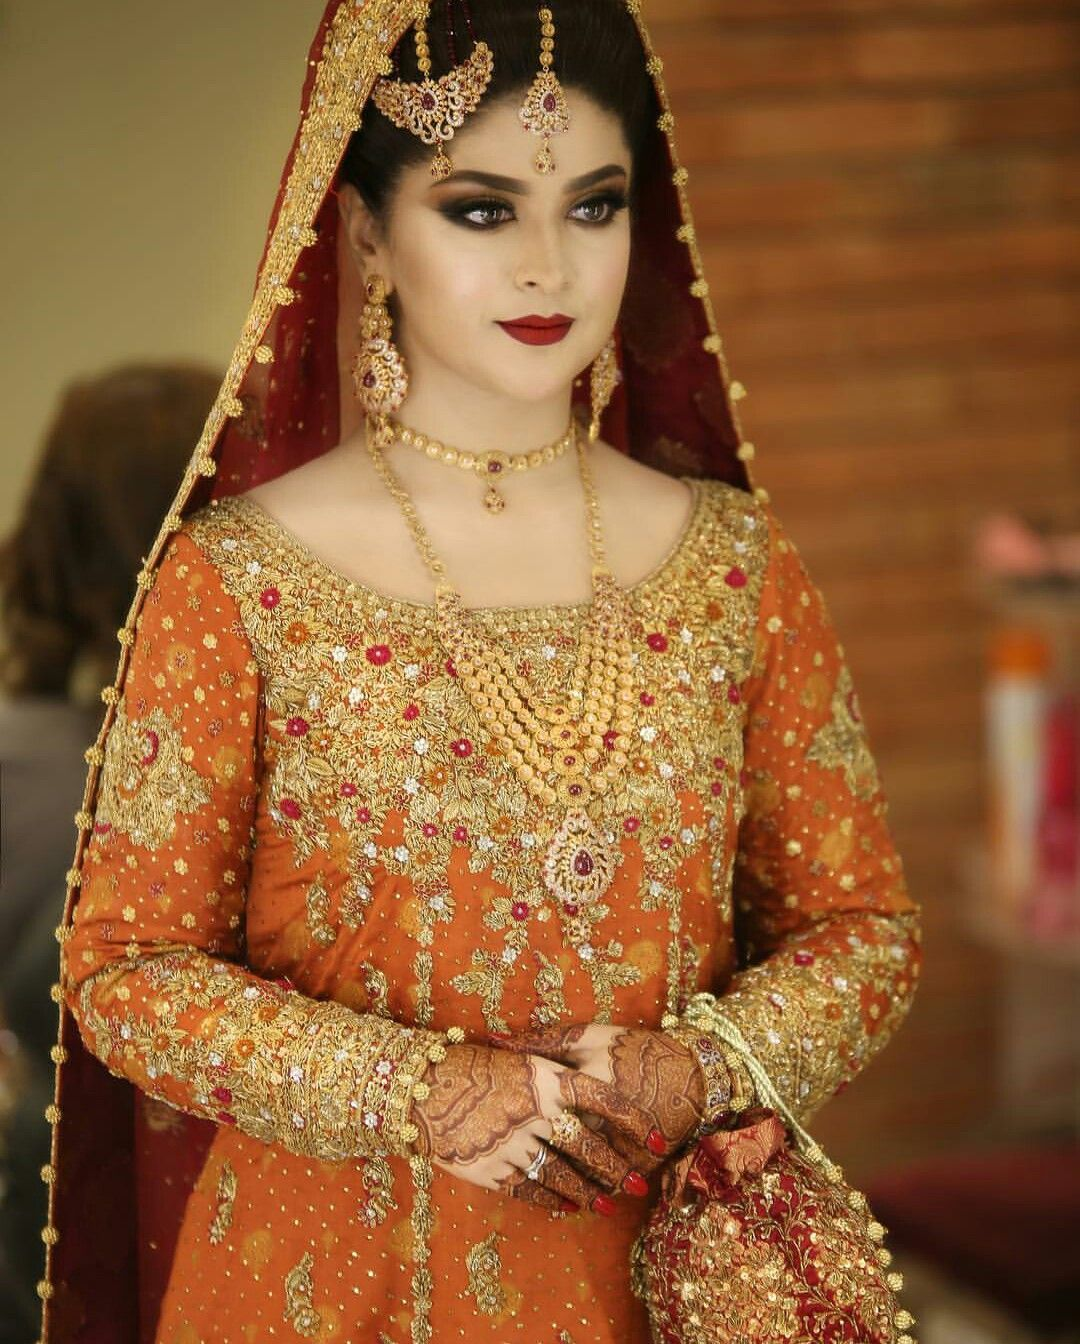 Pin by sehr asif sehry on clothing jewellery bridal pinterest